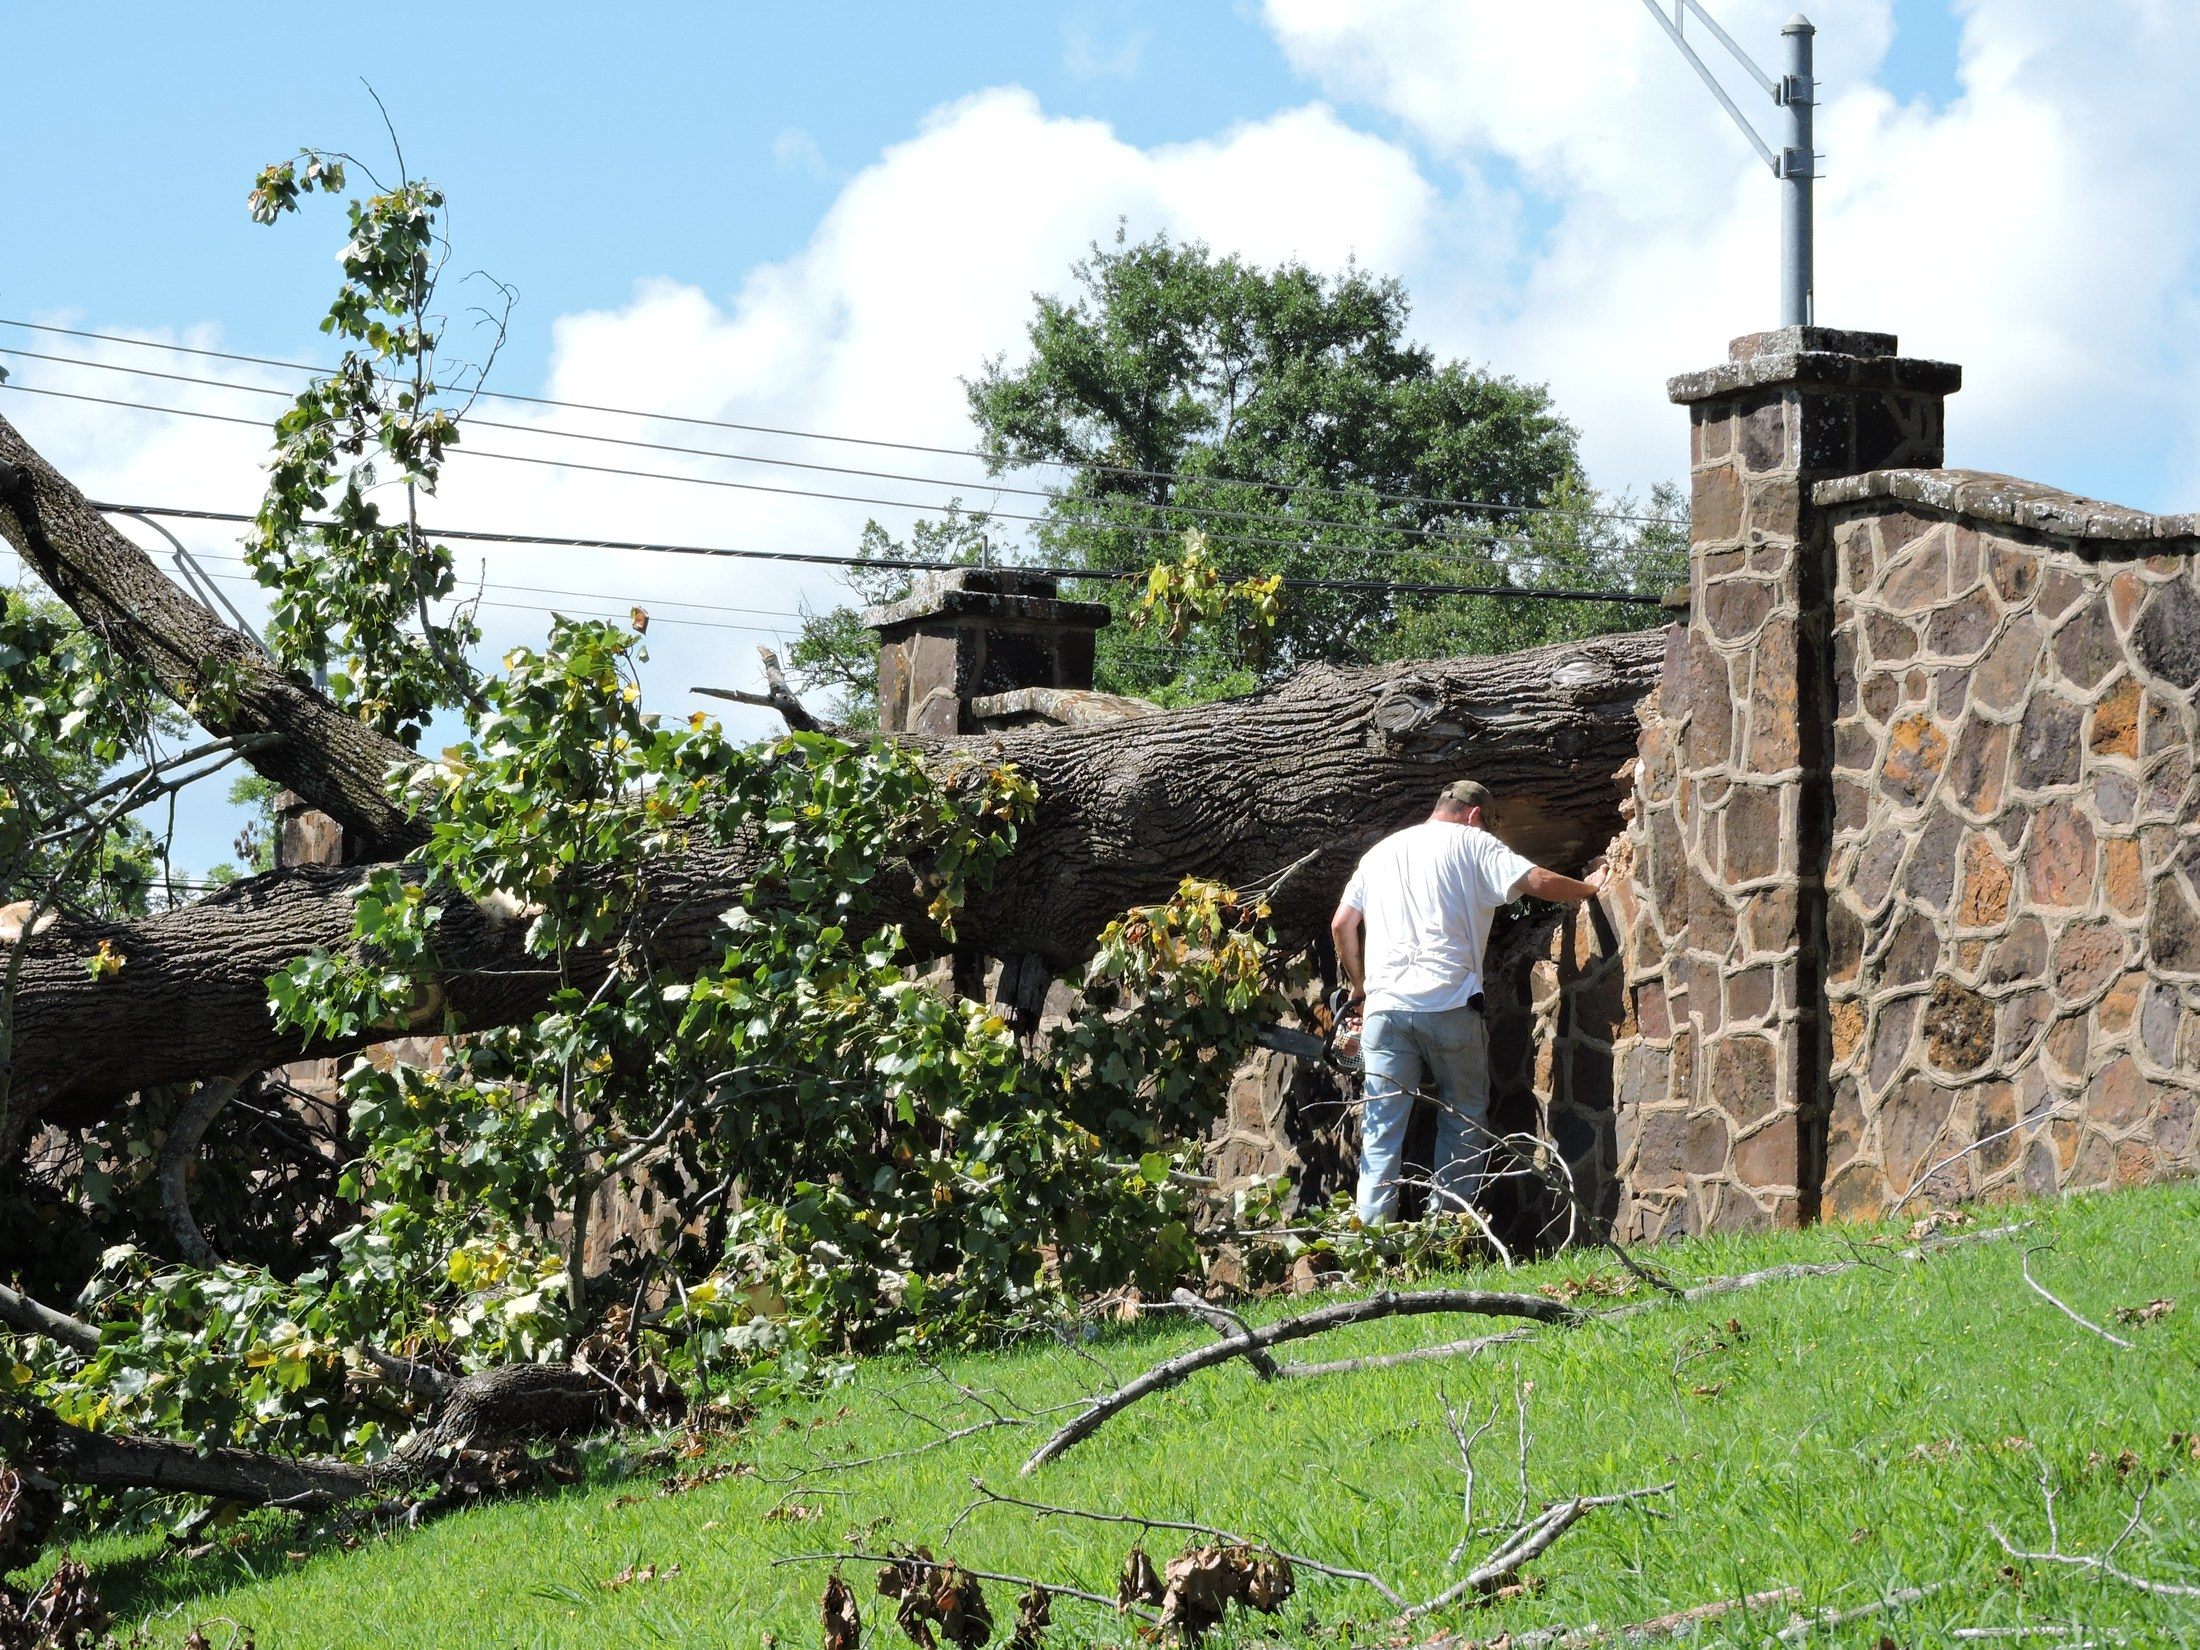 crew working to remove the fallen tree on the wall